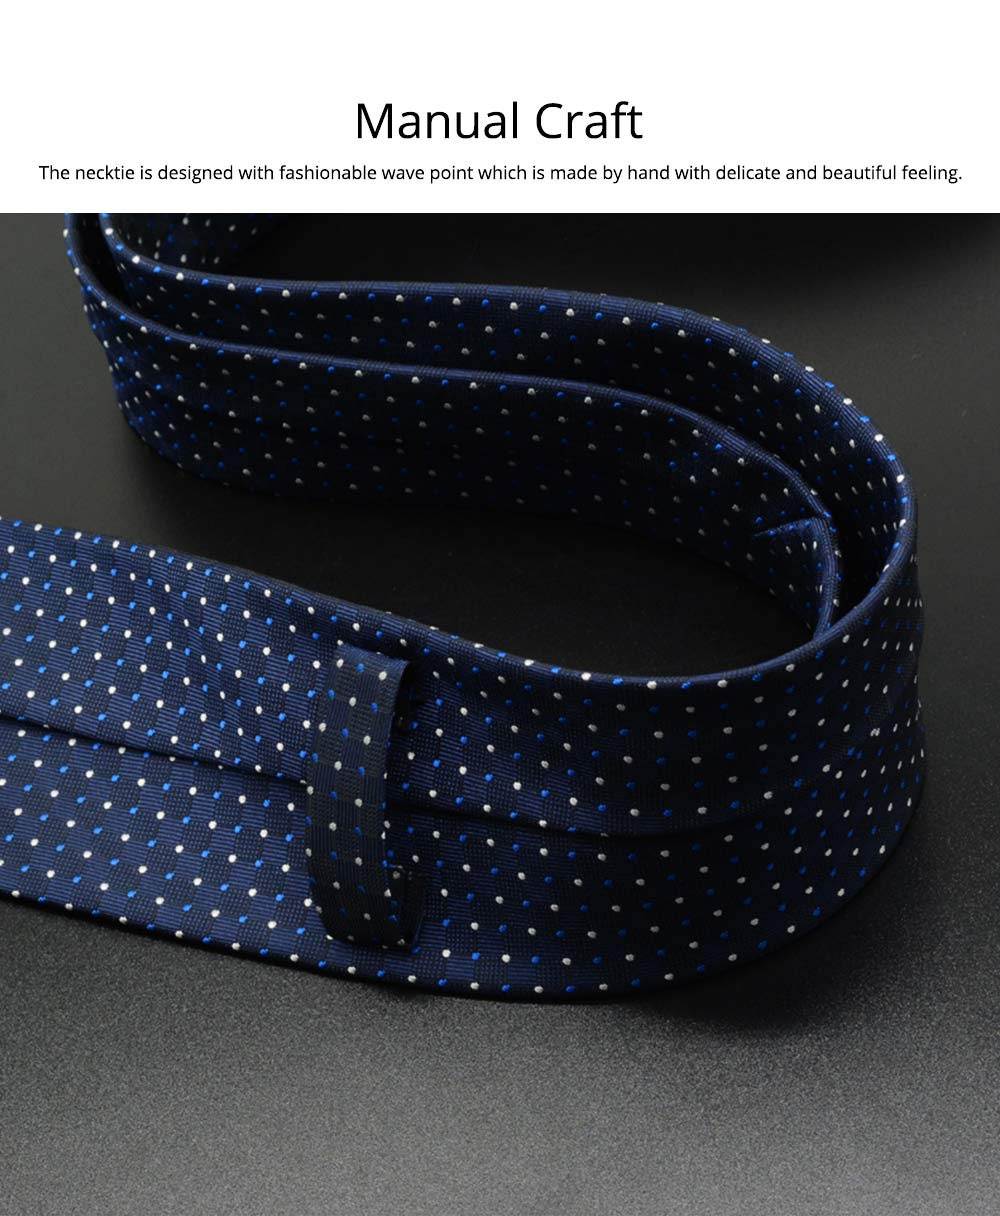 Self Tie Bow Ties for Men, Handcrafted Unique Wave Point Pattern Business Neckties for Groomsmen Gets Married, Various Styles 8